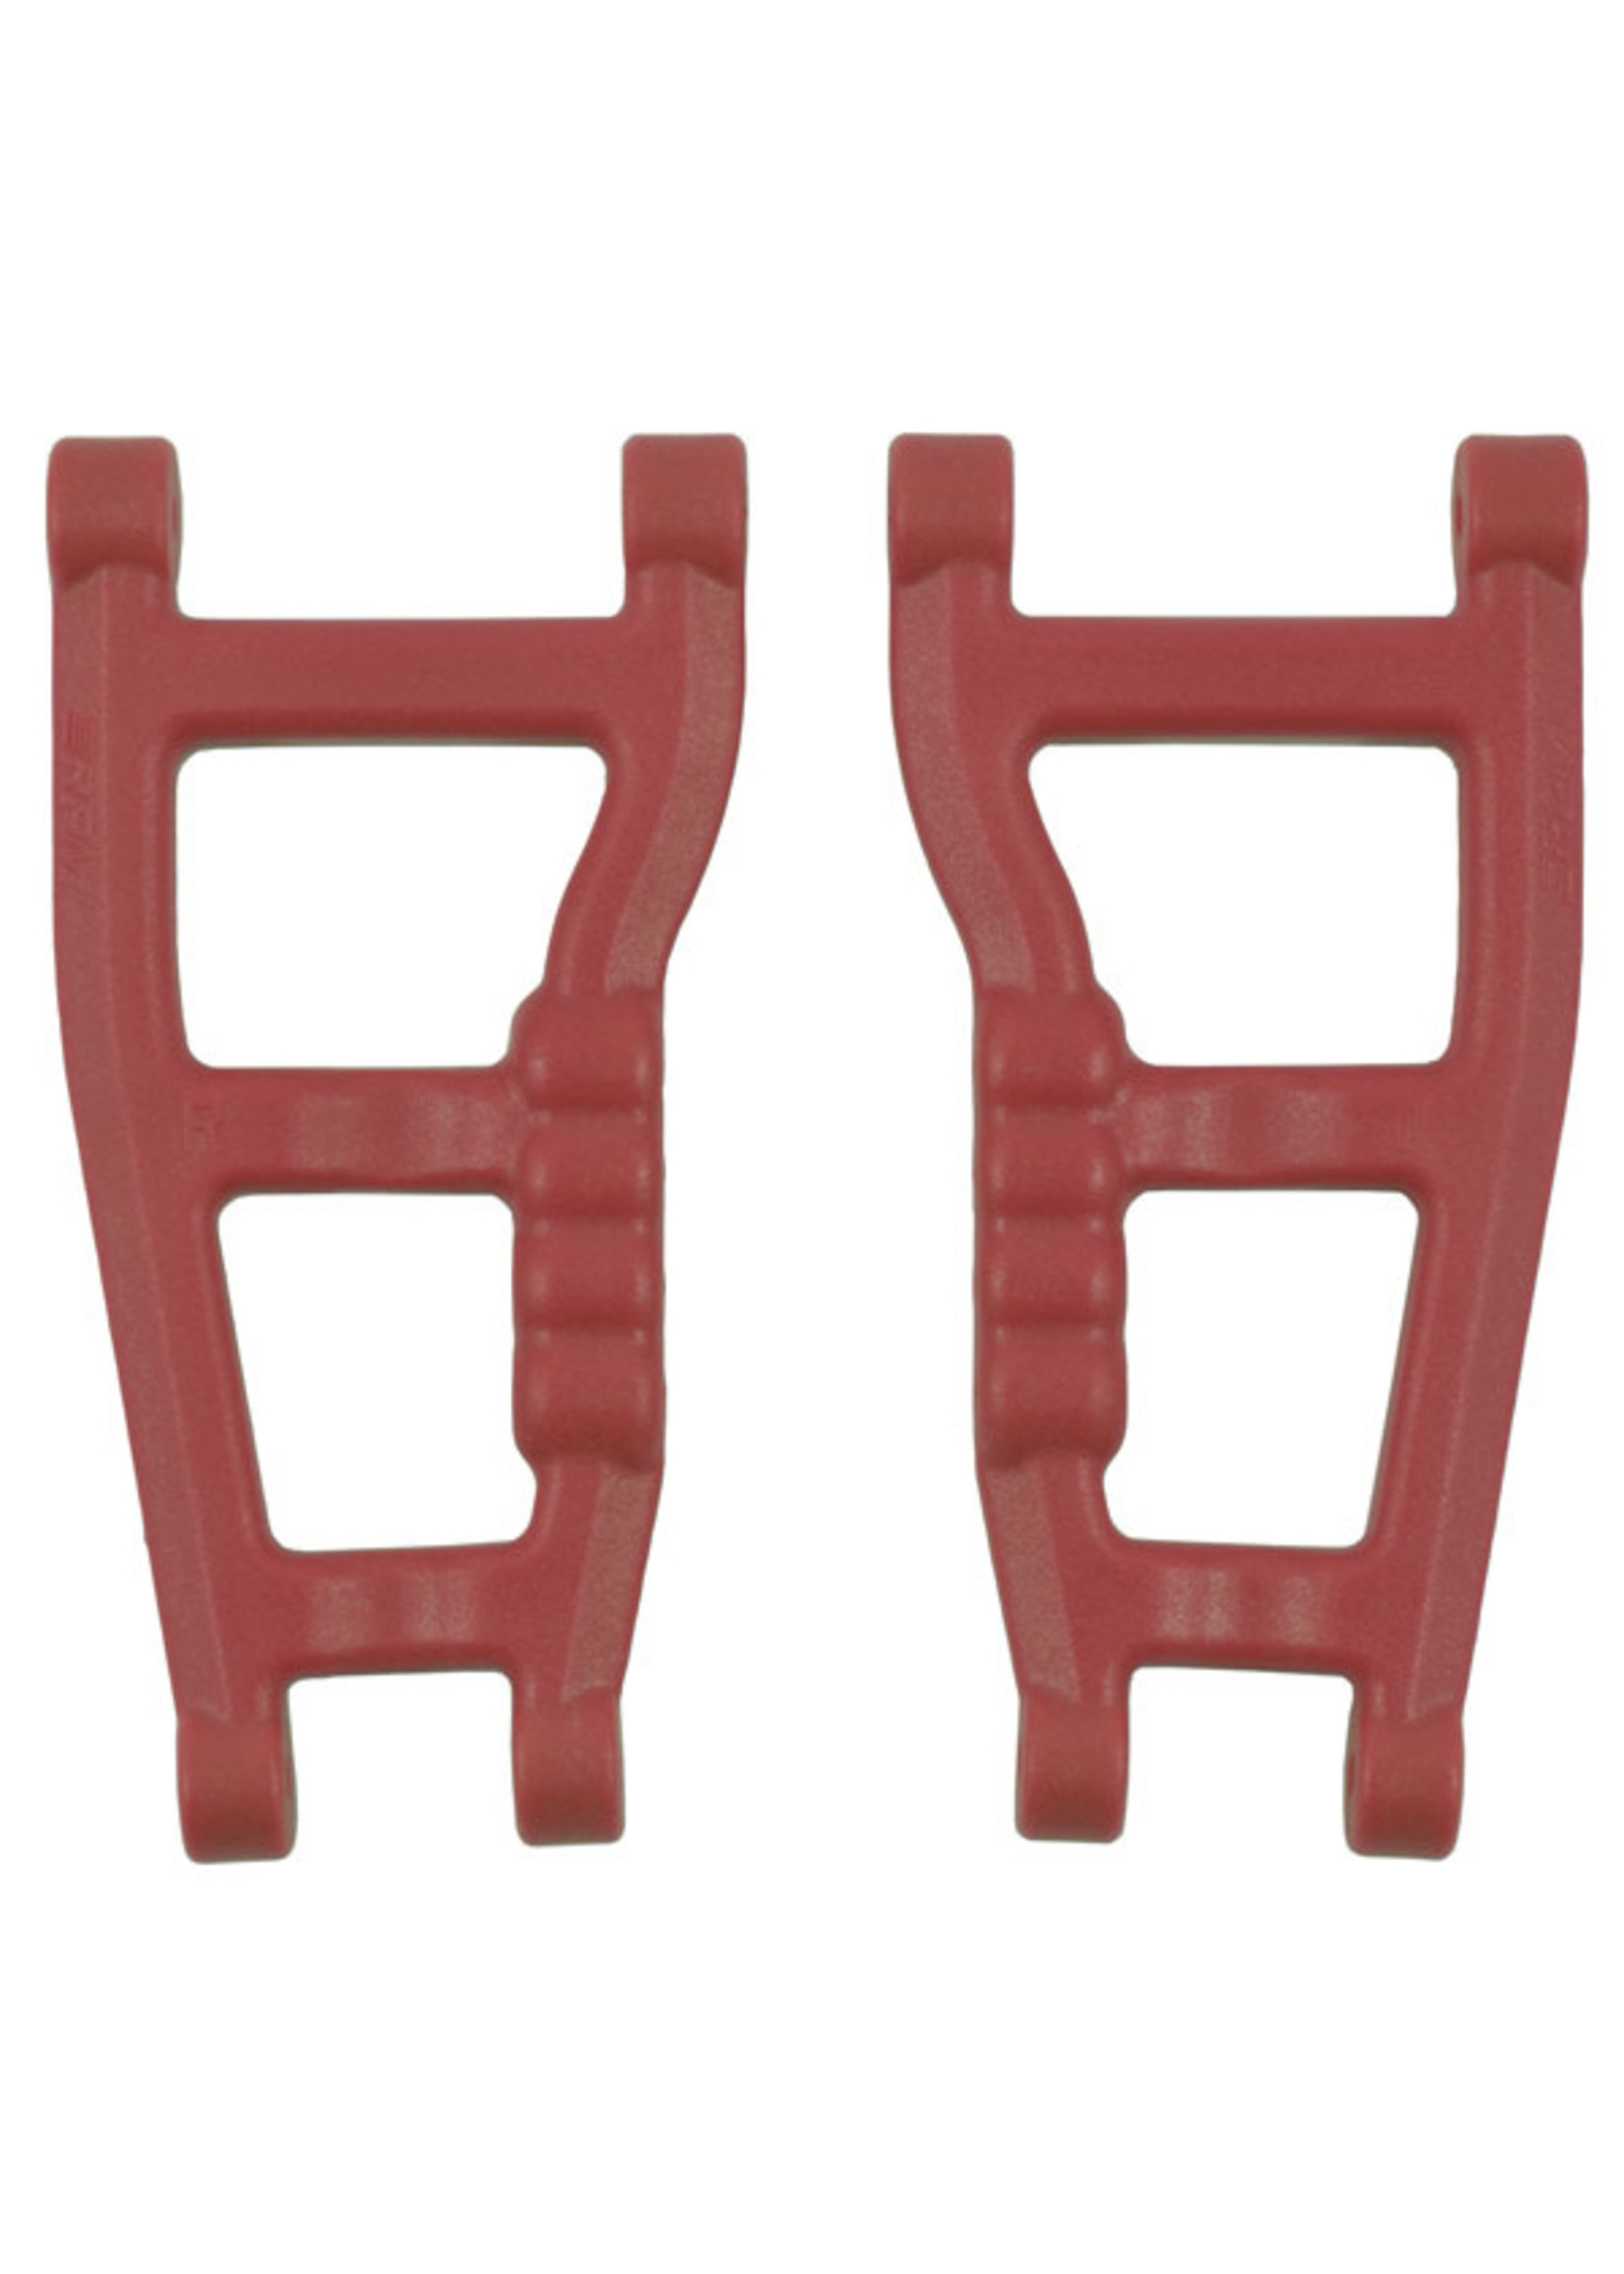 RPM RPM80599 RPM Rear A-Arms, for Traxxas Slash 2wd, Red